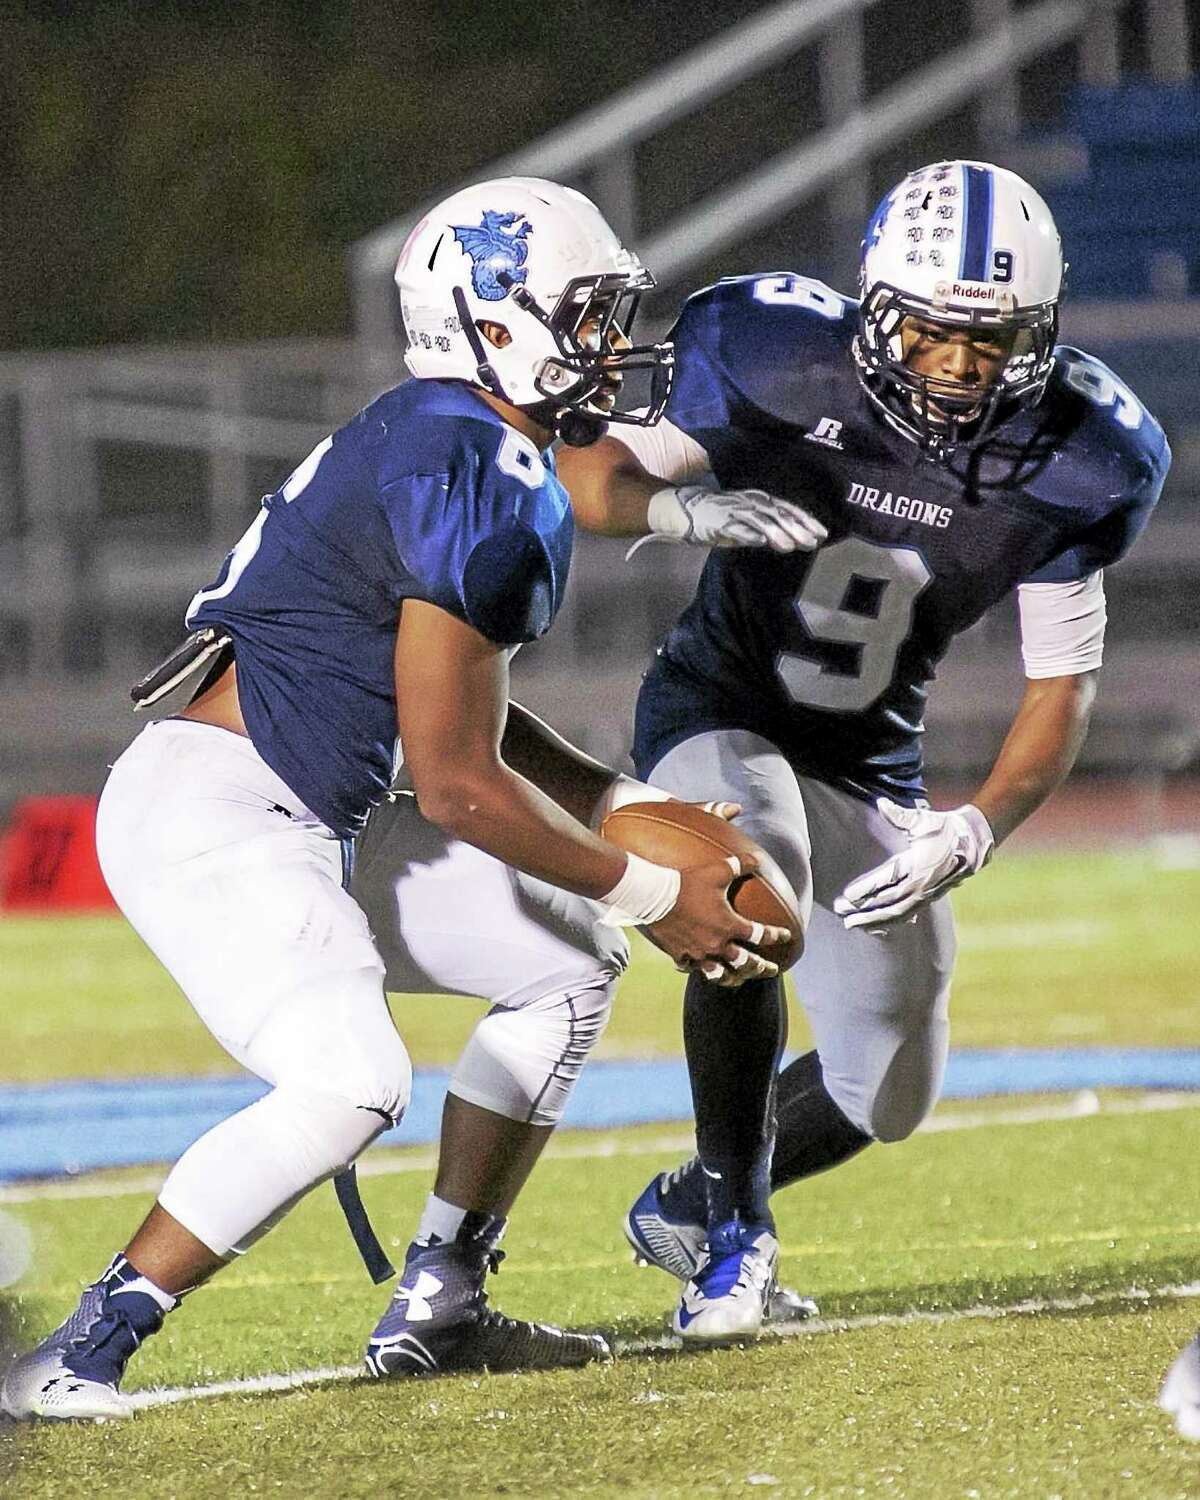 Middletown's Dario Highsmith hands off to teammate Calvin Mackey, Jr. to advance the Dragons for a win against Fermi.